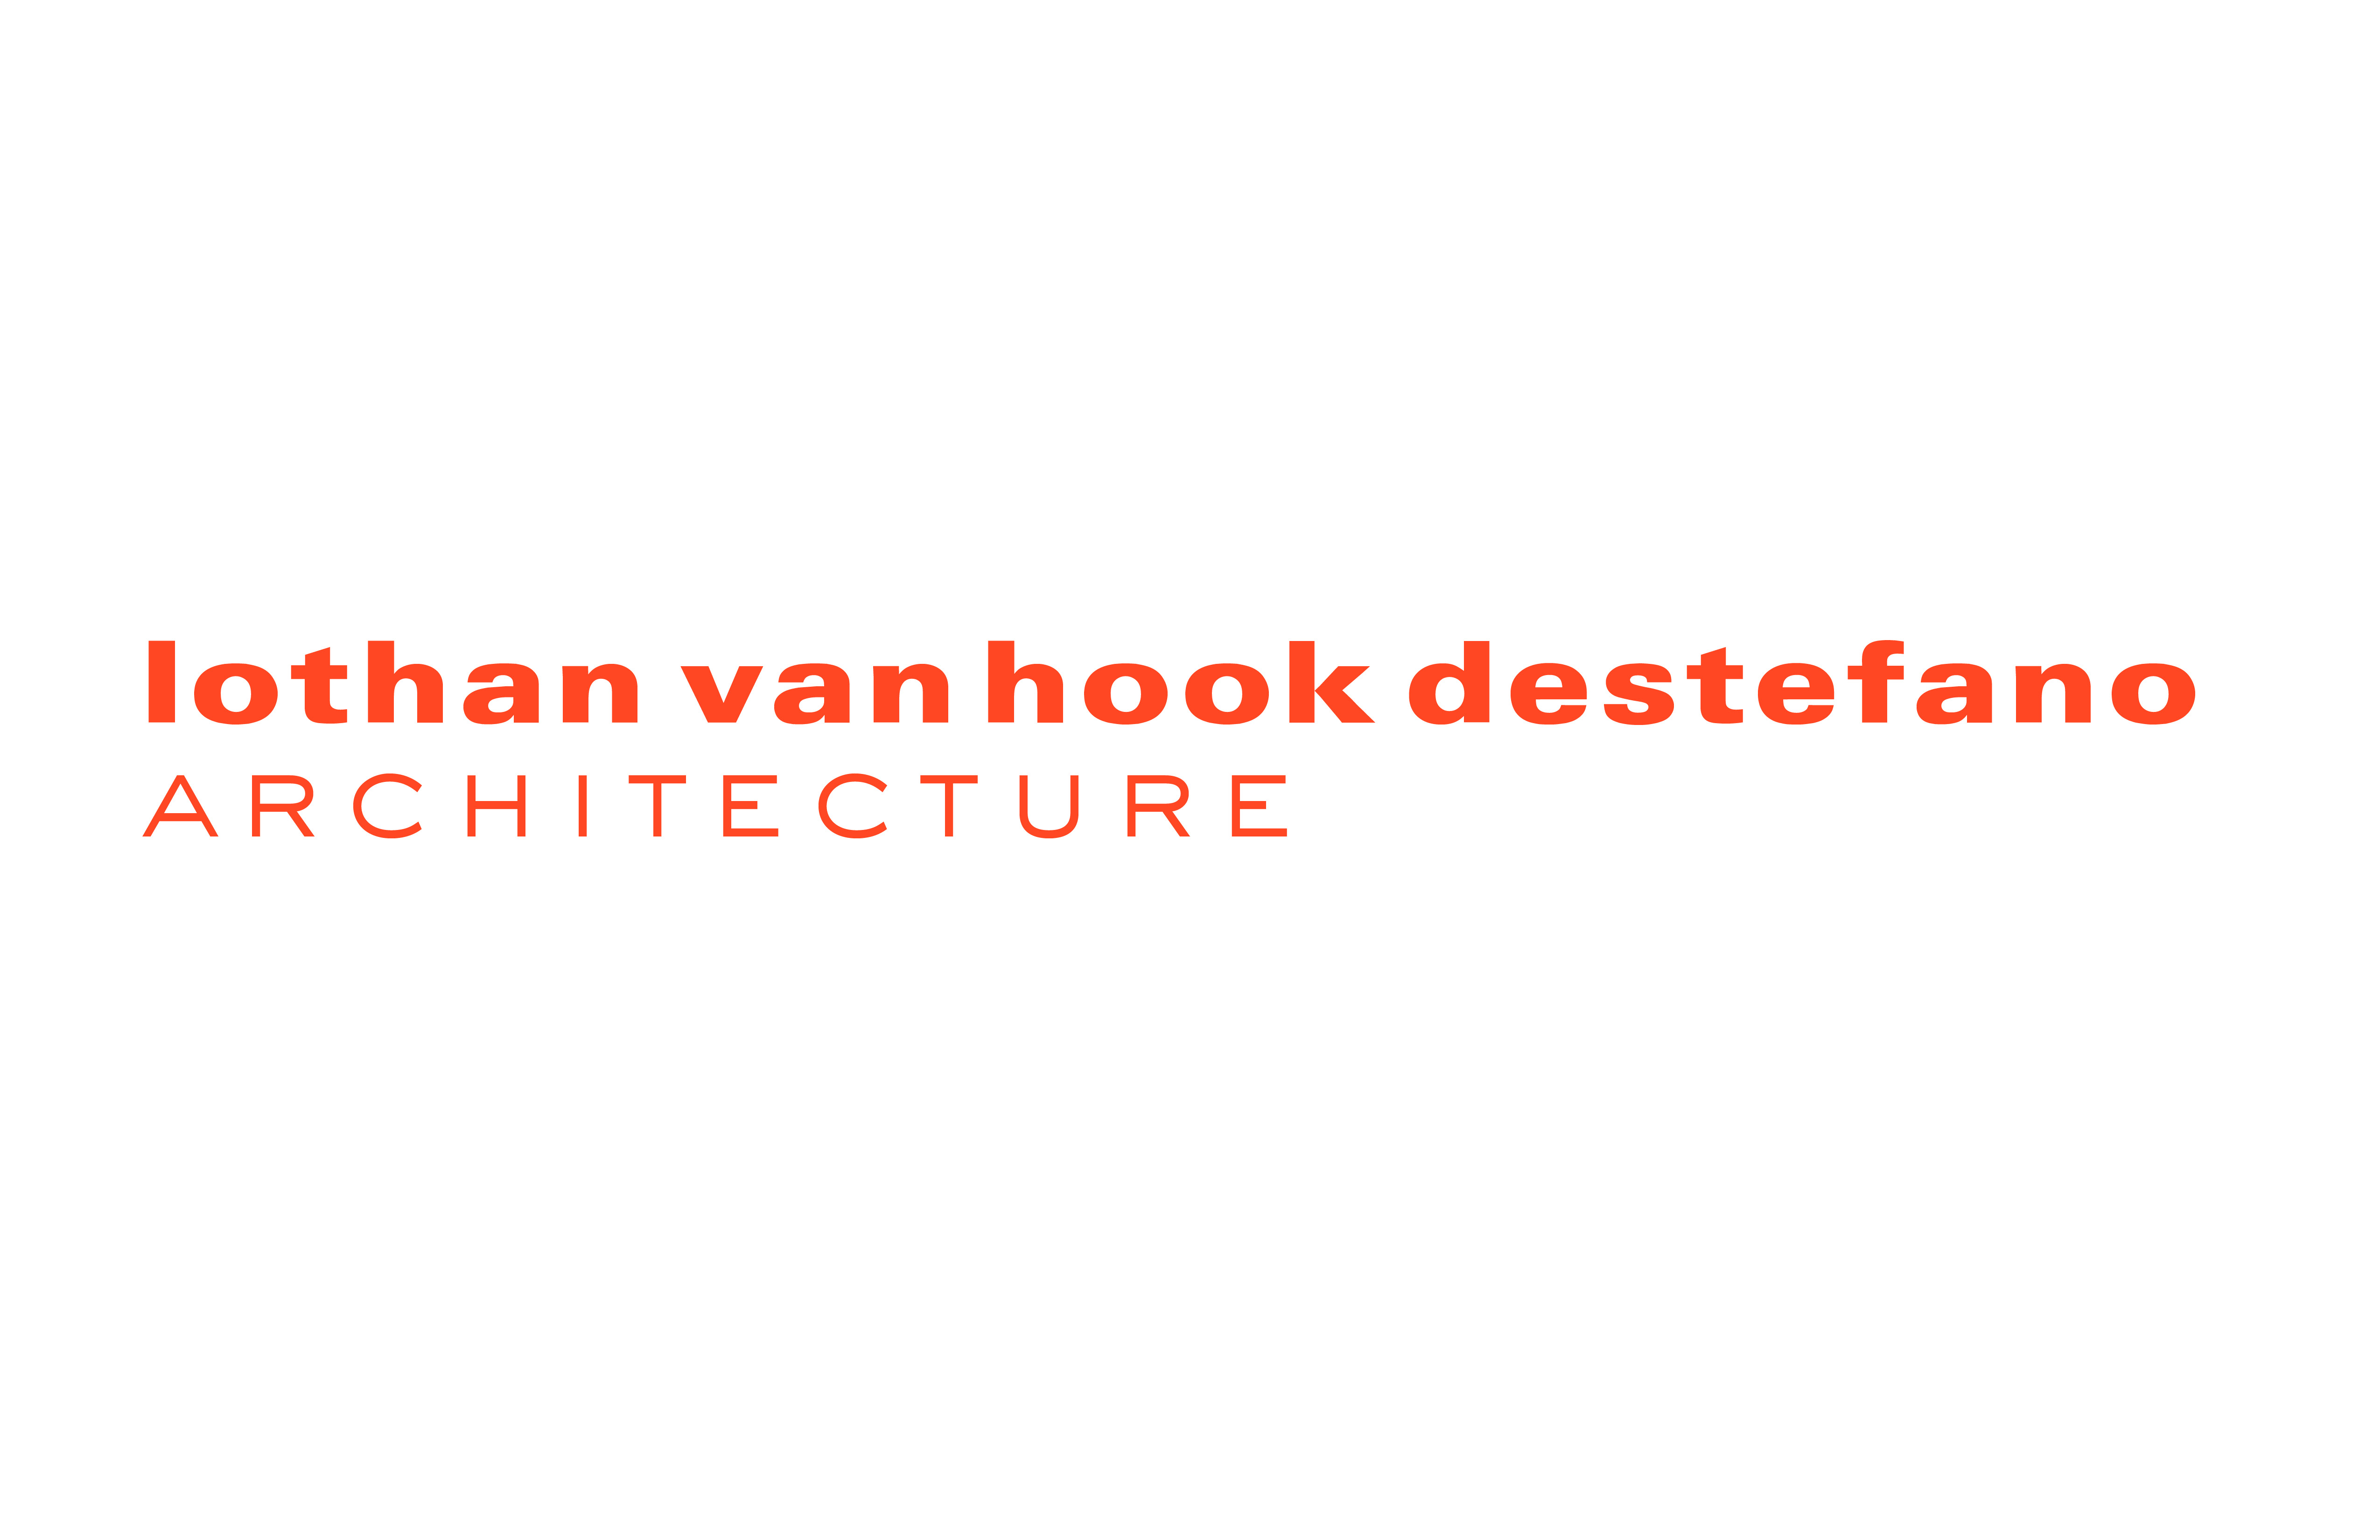 Find An Architect American Institute of Architects